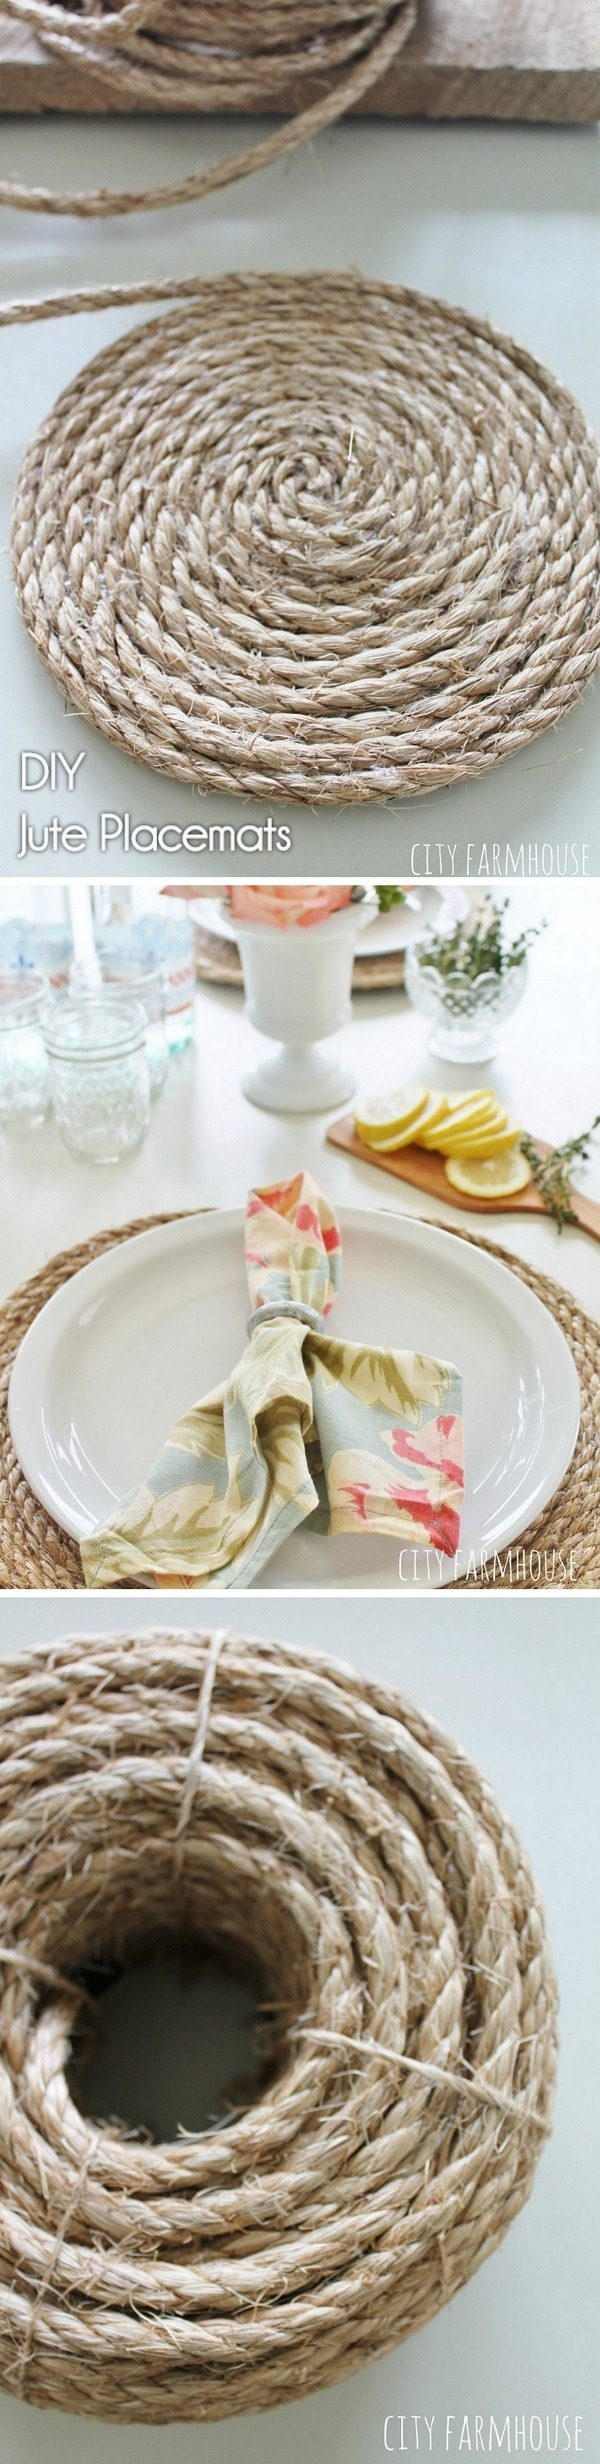 Check out how to make these #rustic #DIY jute placemats for #farmhouse #HomeDecorIdeas